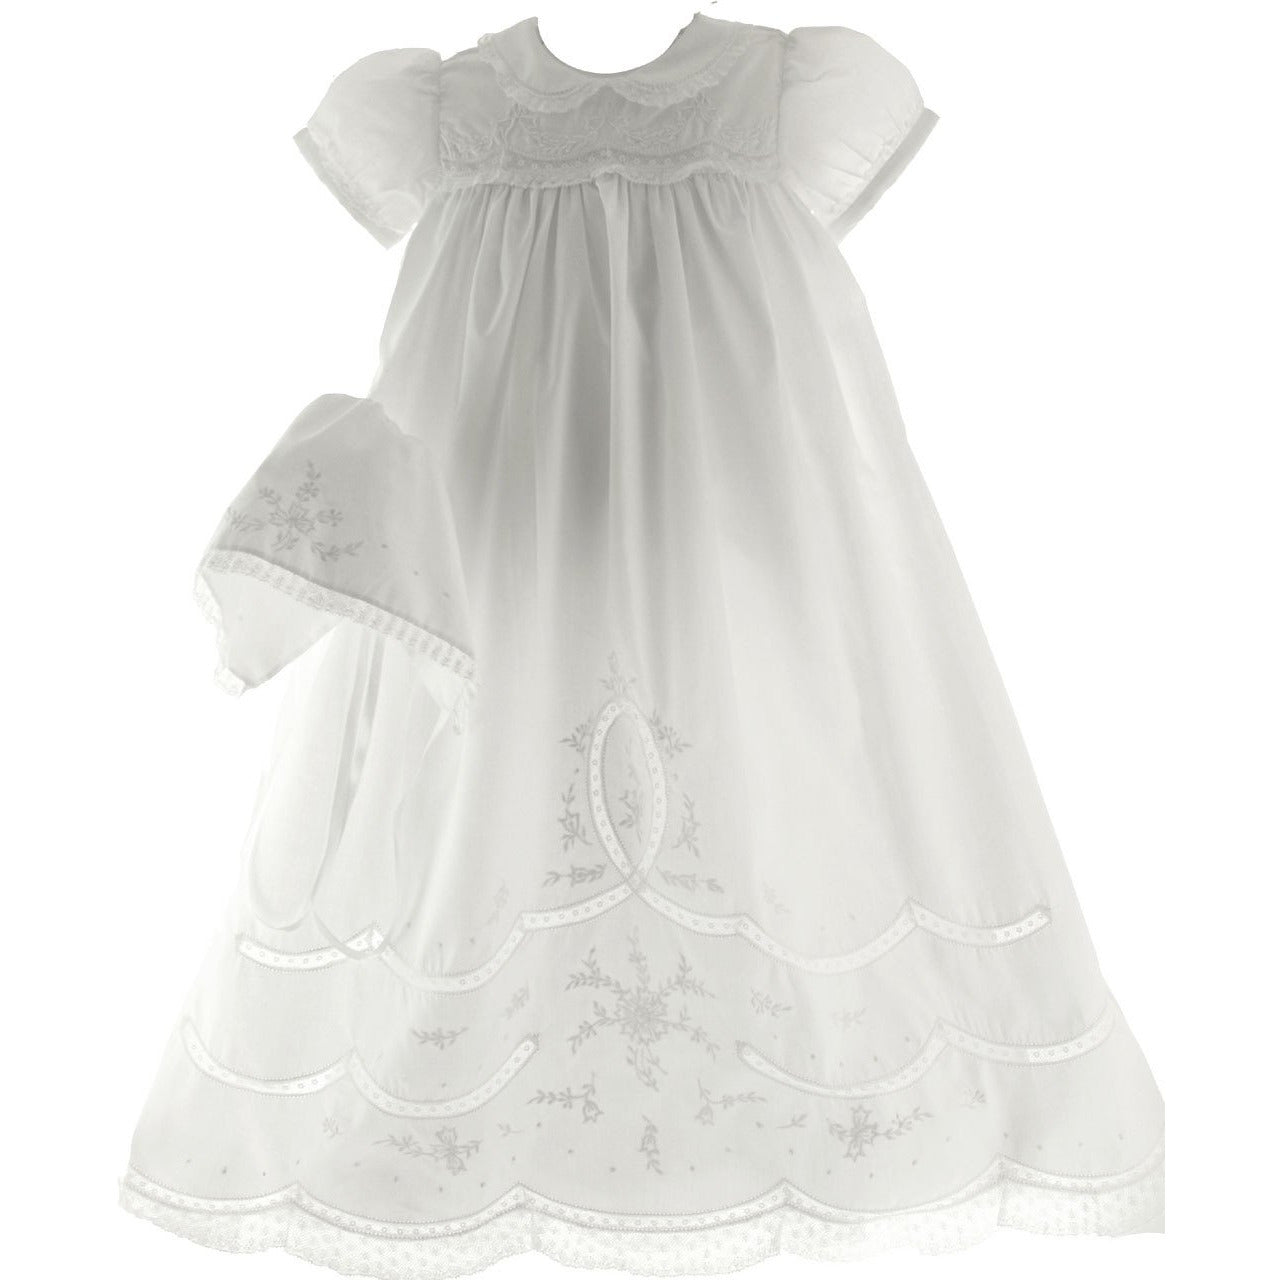 Feltman Brothers Christening or Baptism gown